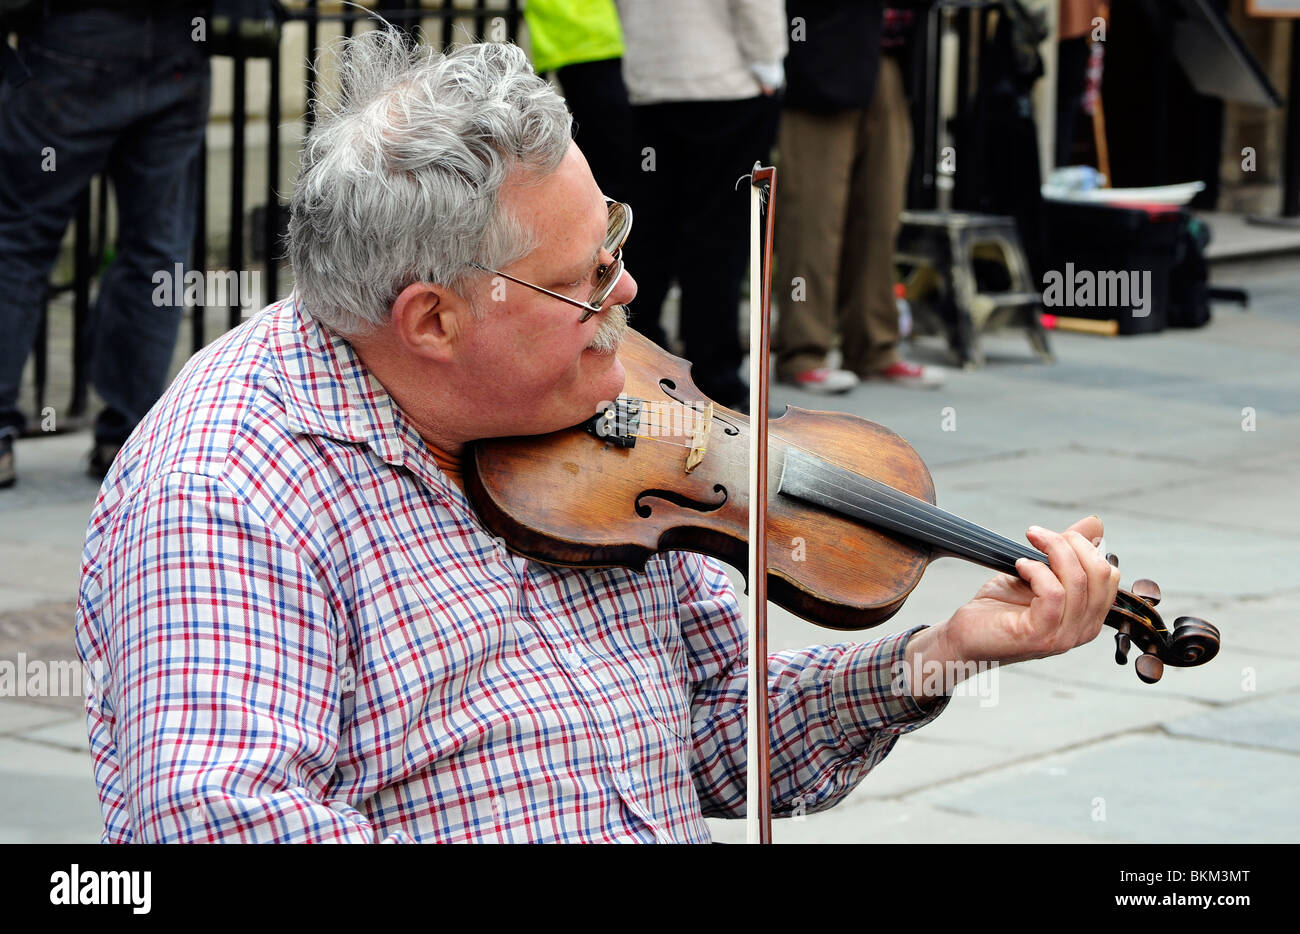 a busker playing the violin in bath, england, uk - Stock Image